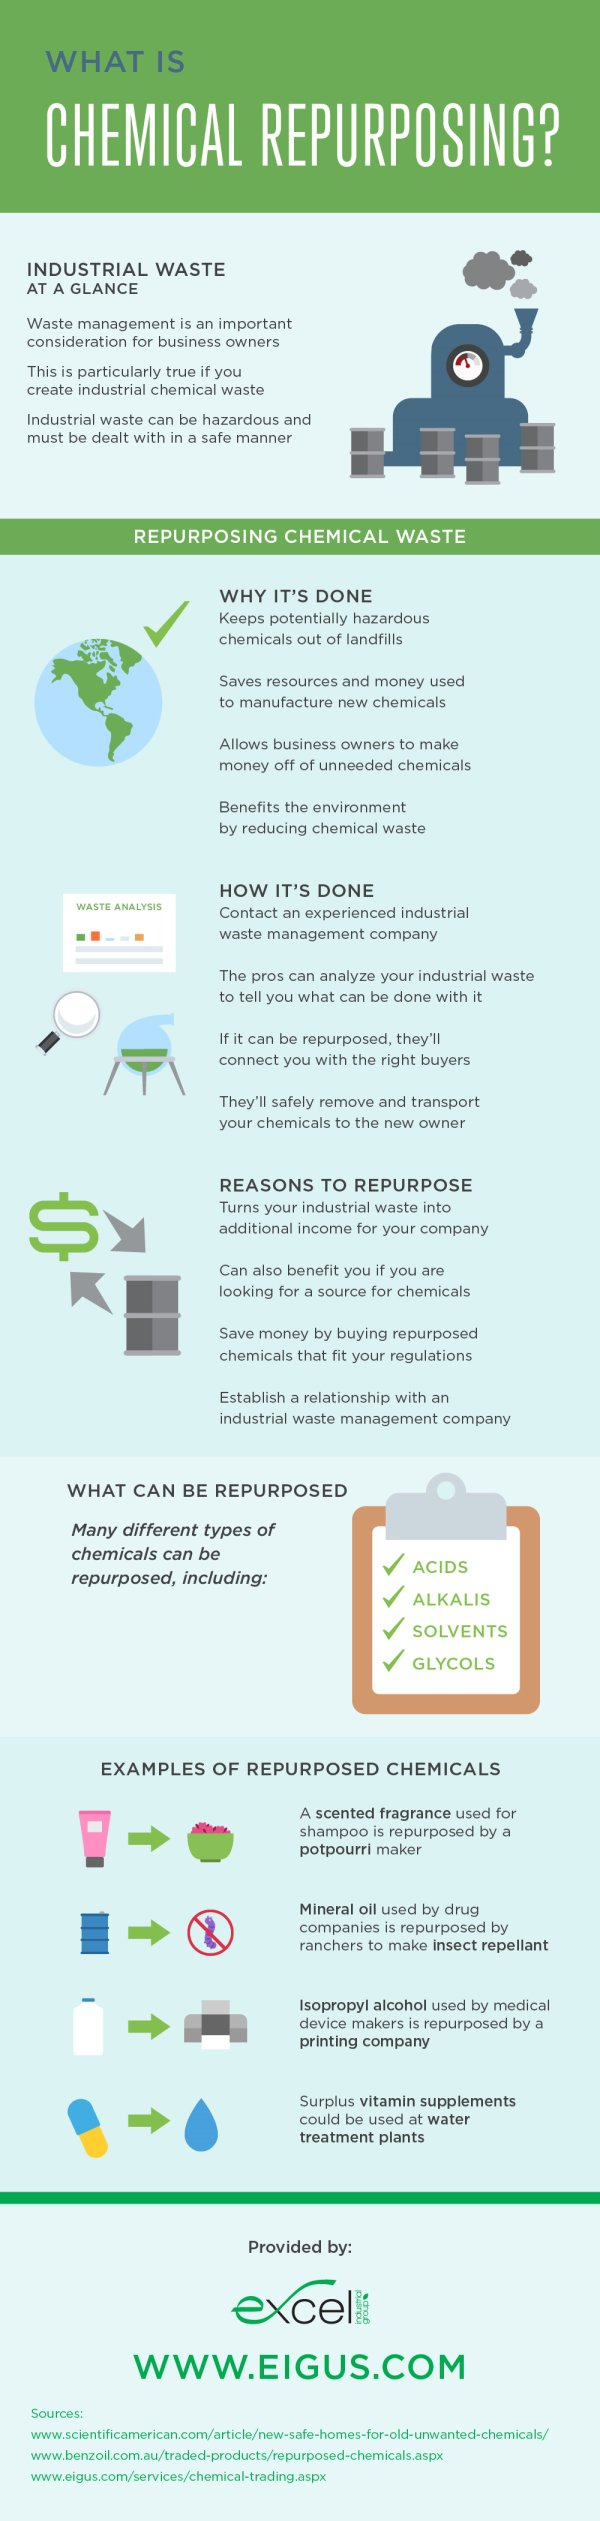 What is Chemical Repurposing - Infographic